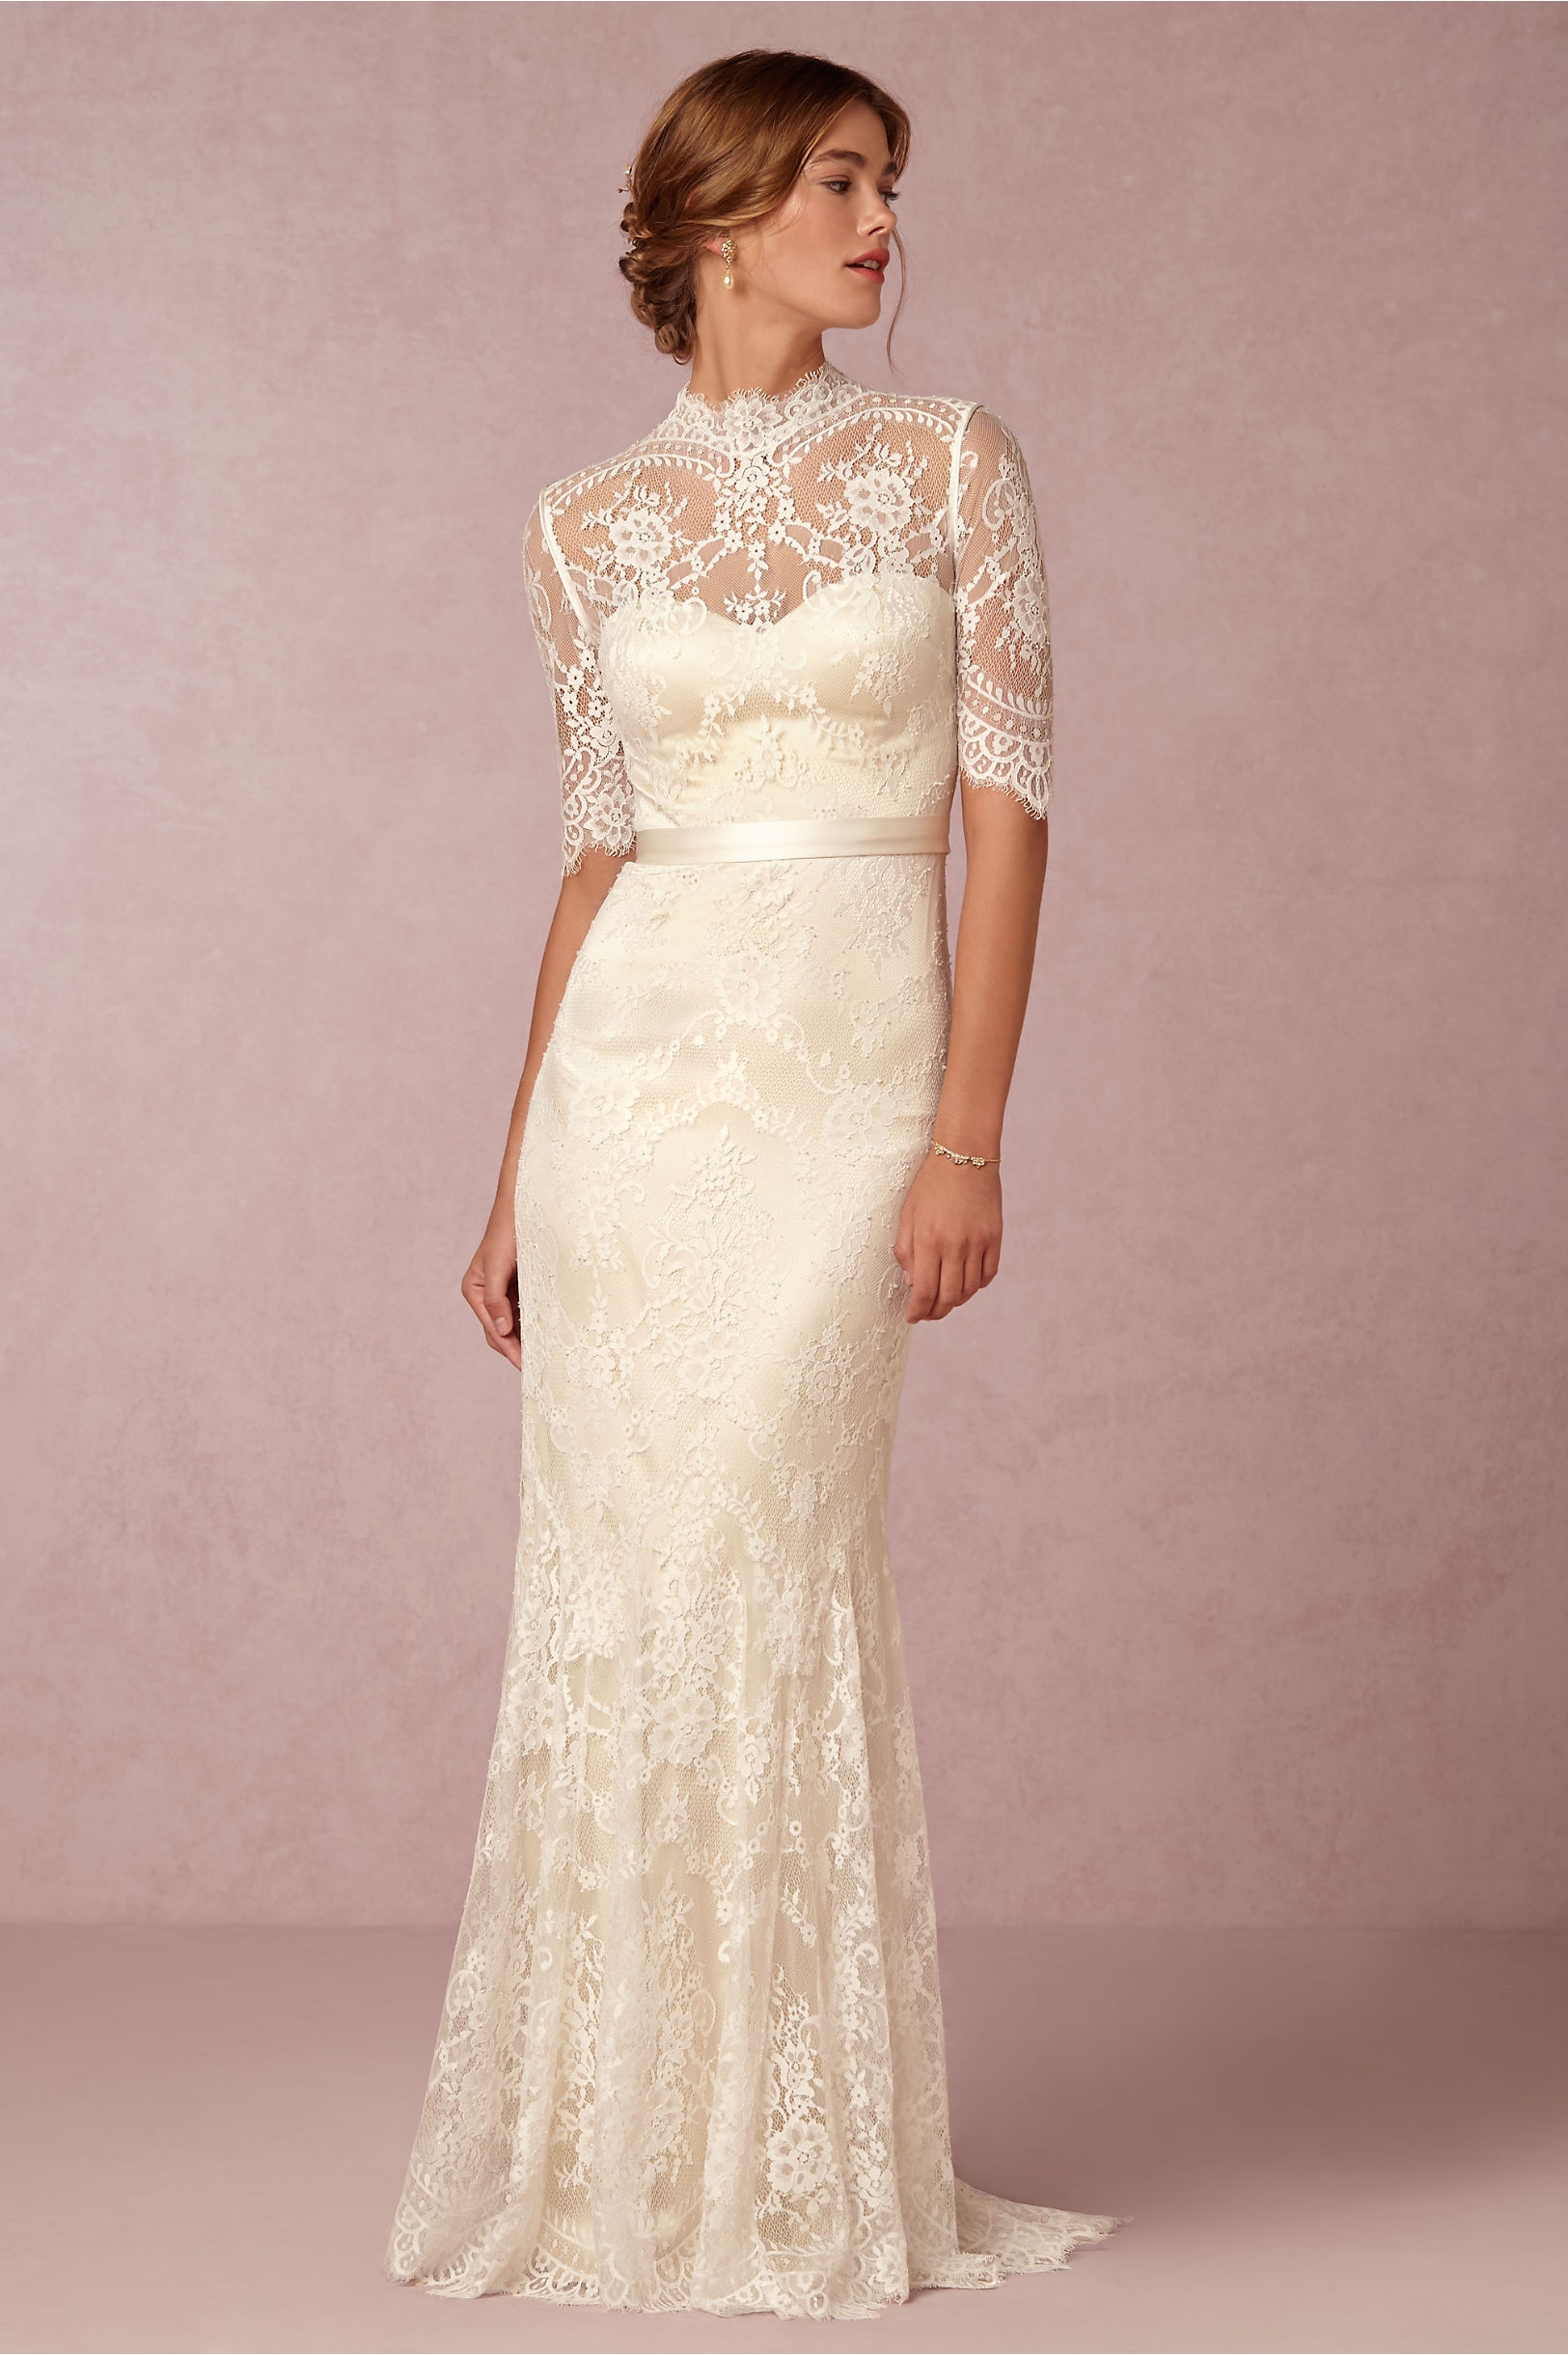 straight lace wedding dress with sleeves straight wedding dresses Straight Lace Wedding Dress With Sleeves